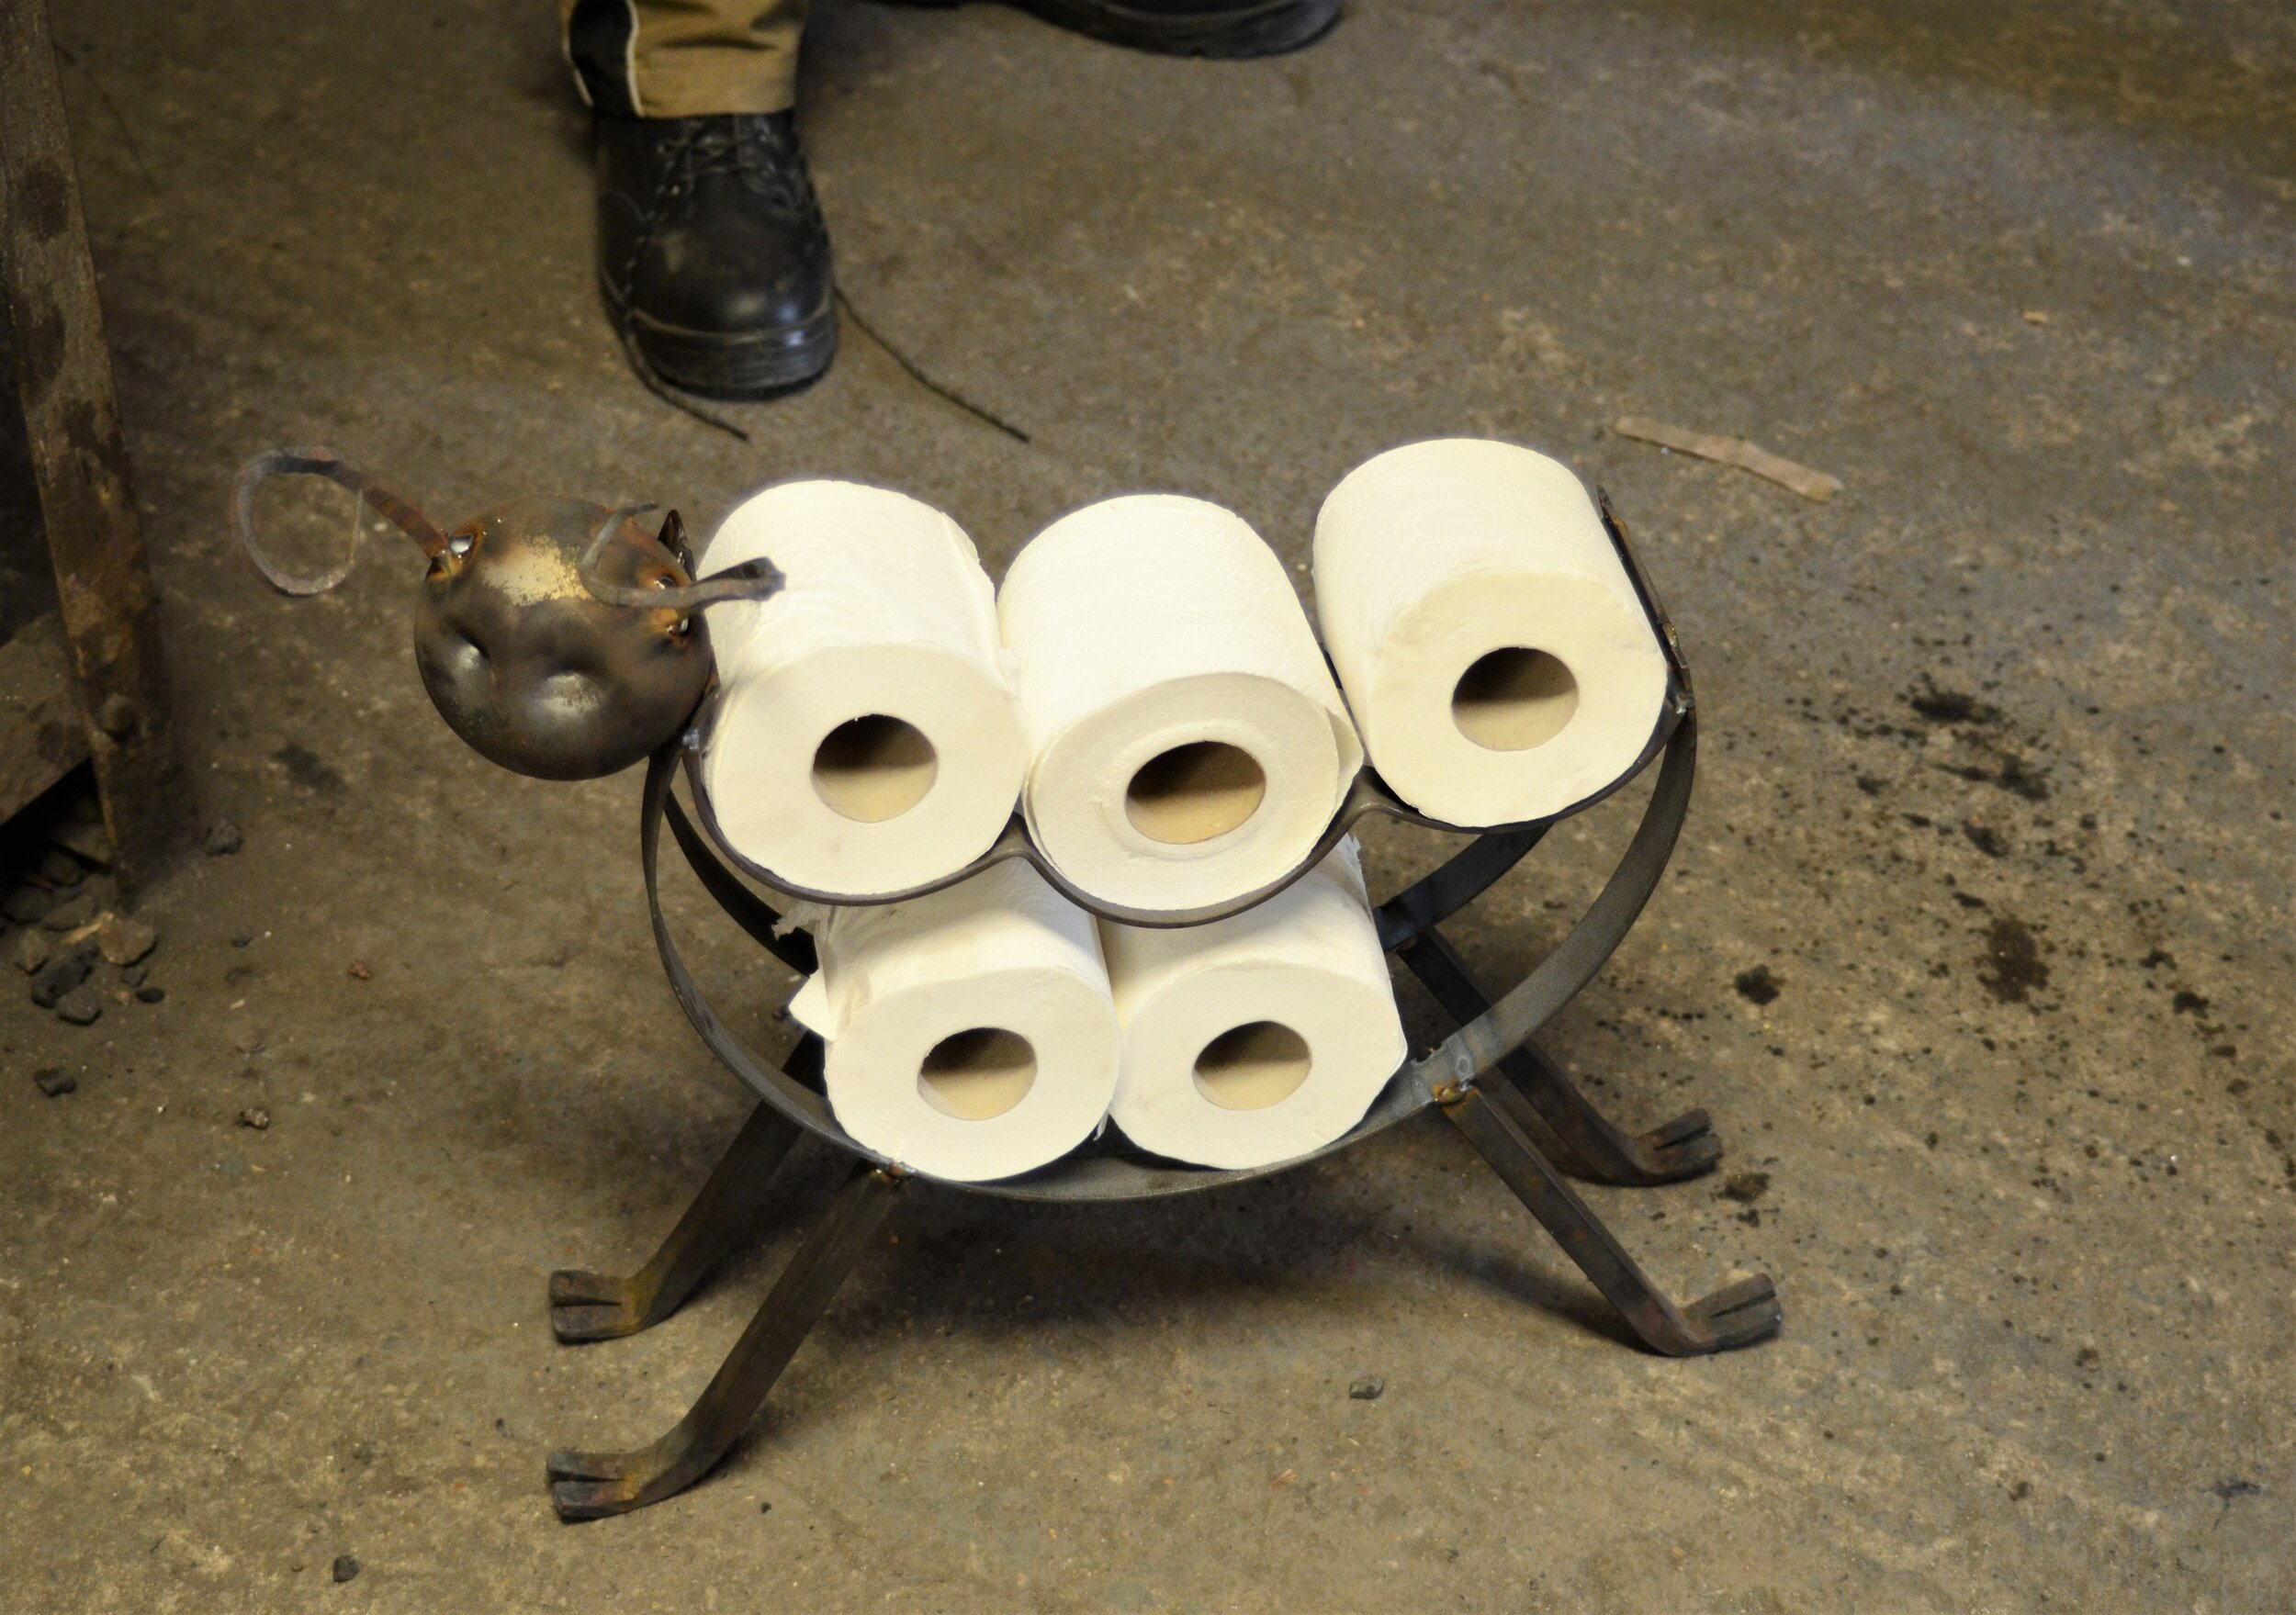 A toilet roll holder made on the day